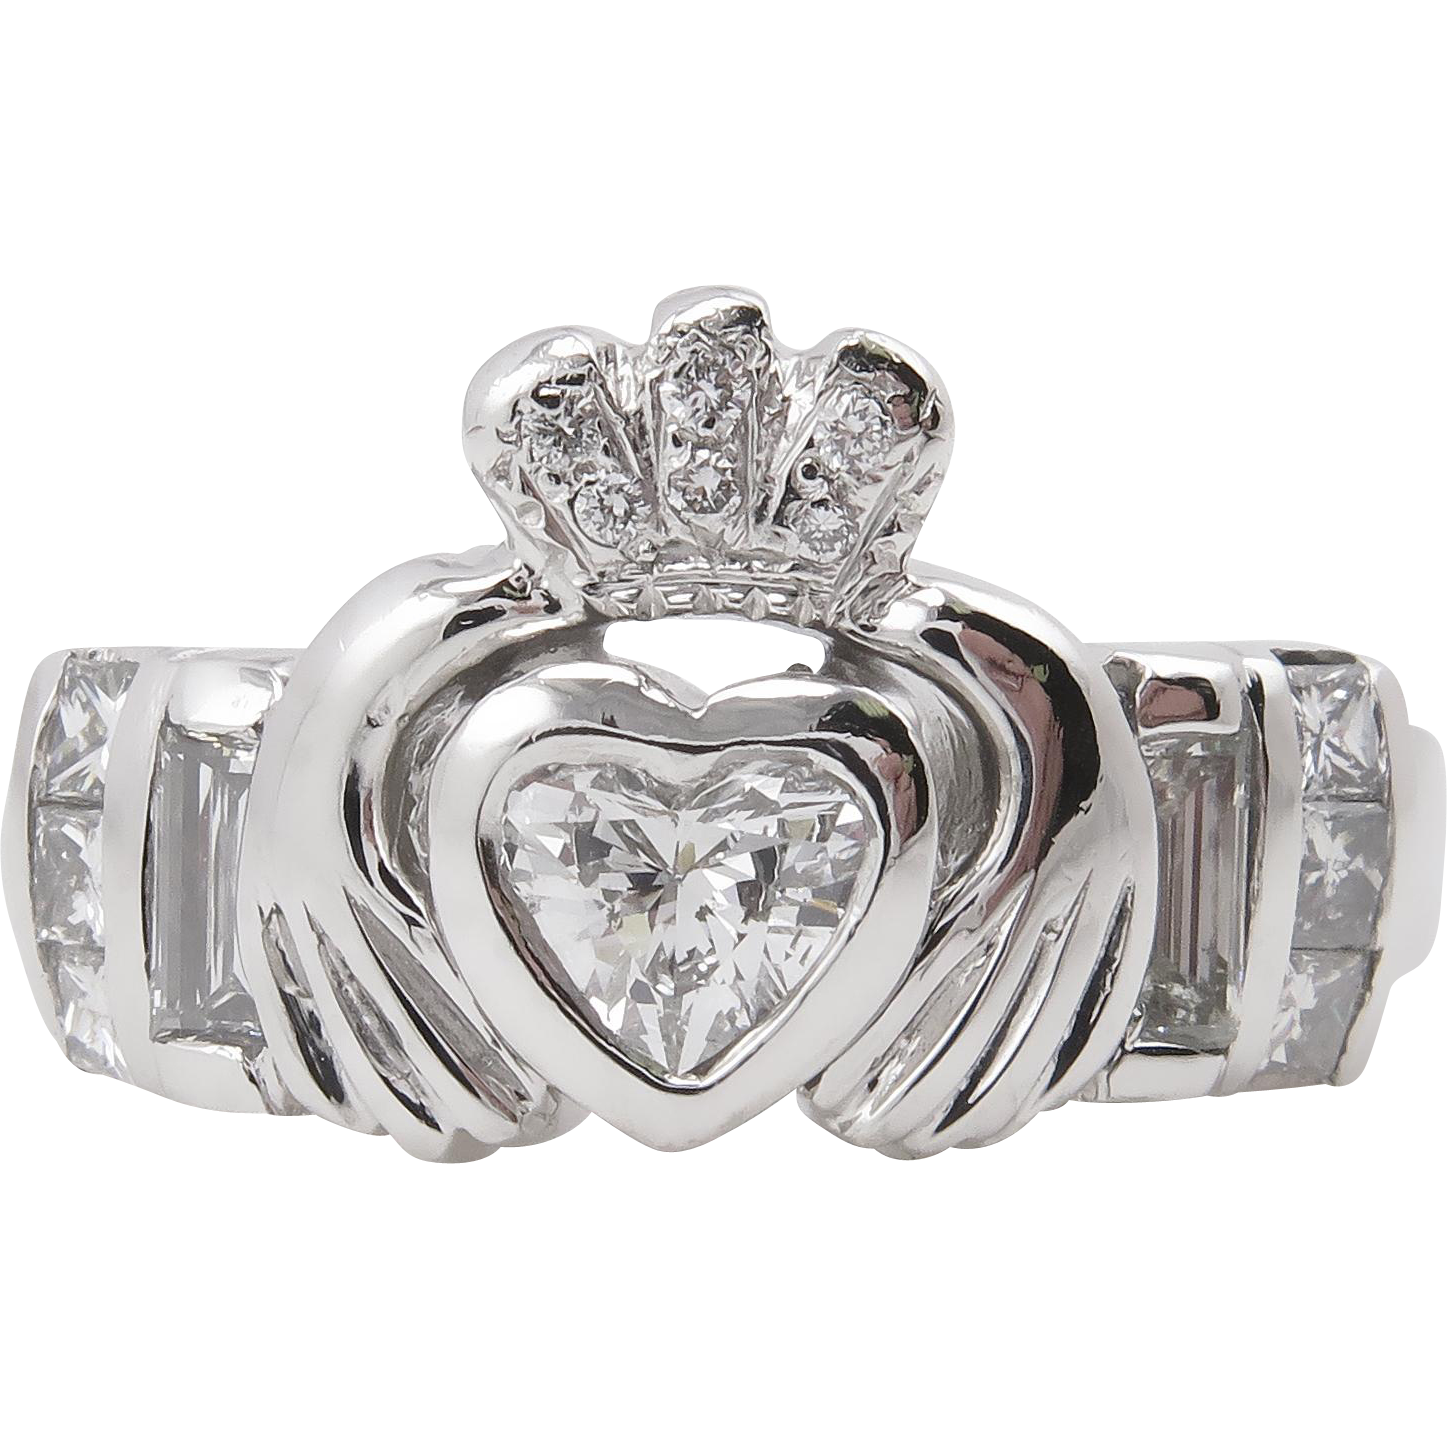 claddagh engagement ring - photo #15